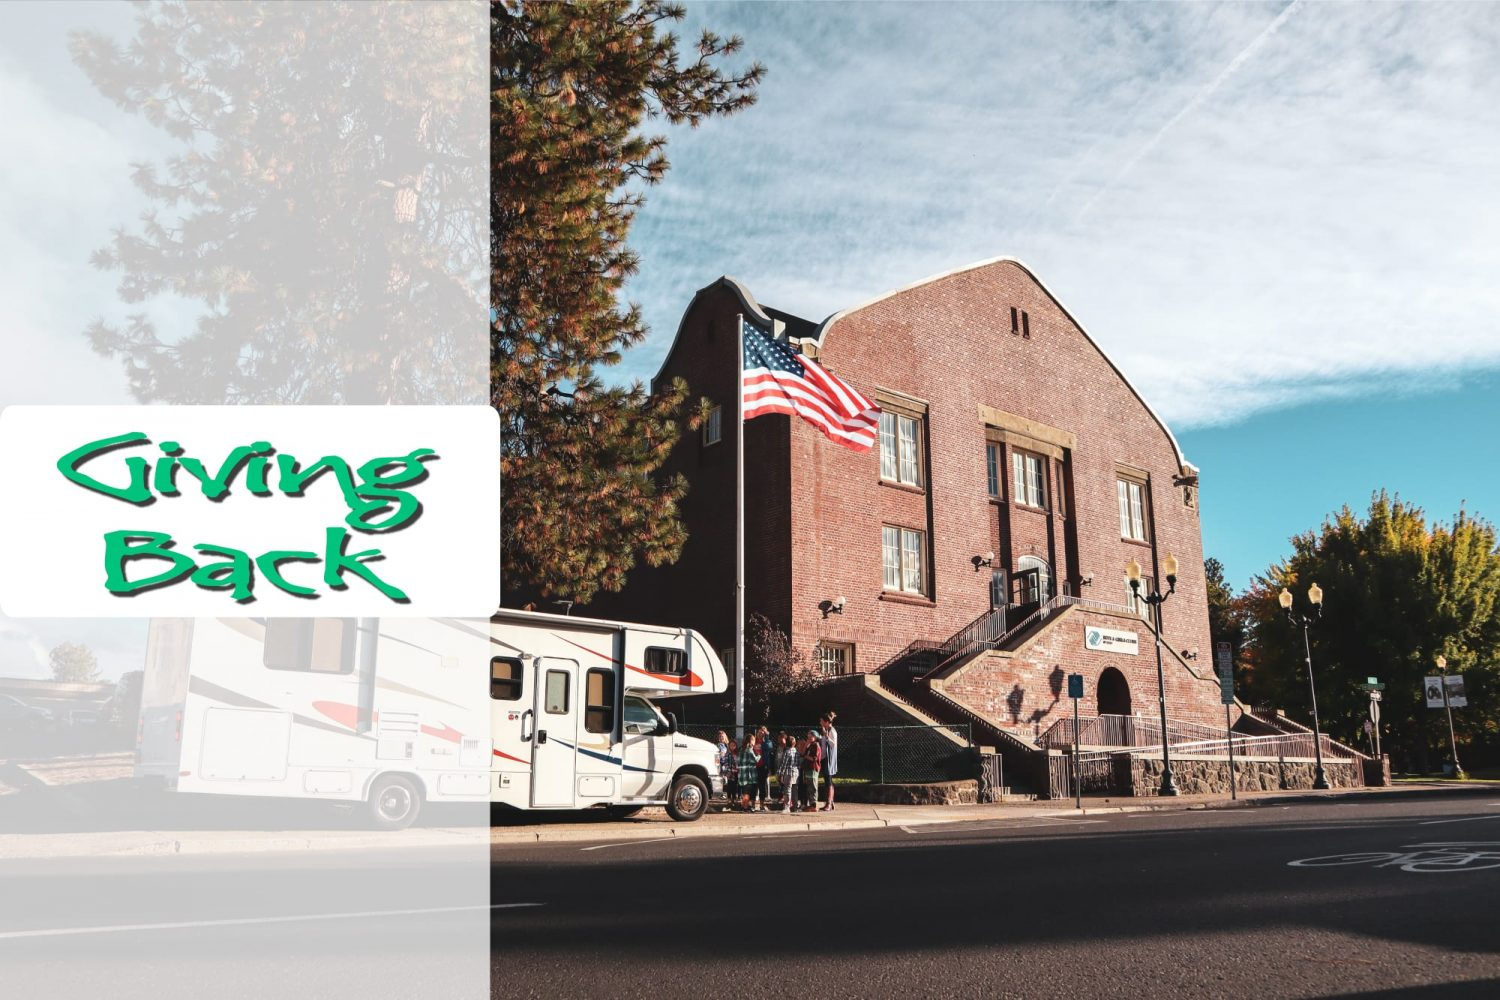 Happy Campers is the Presenting Sponsor for the Boys & Girls club of Bend